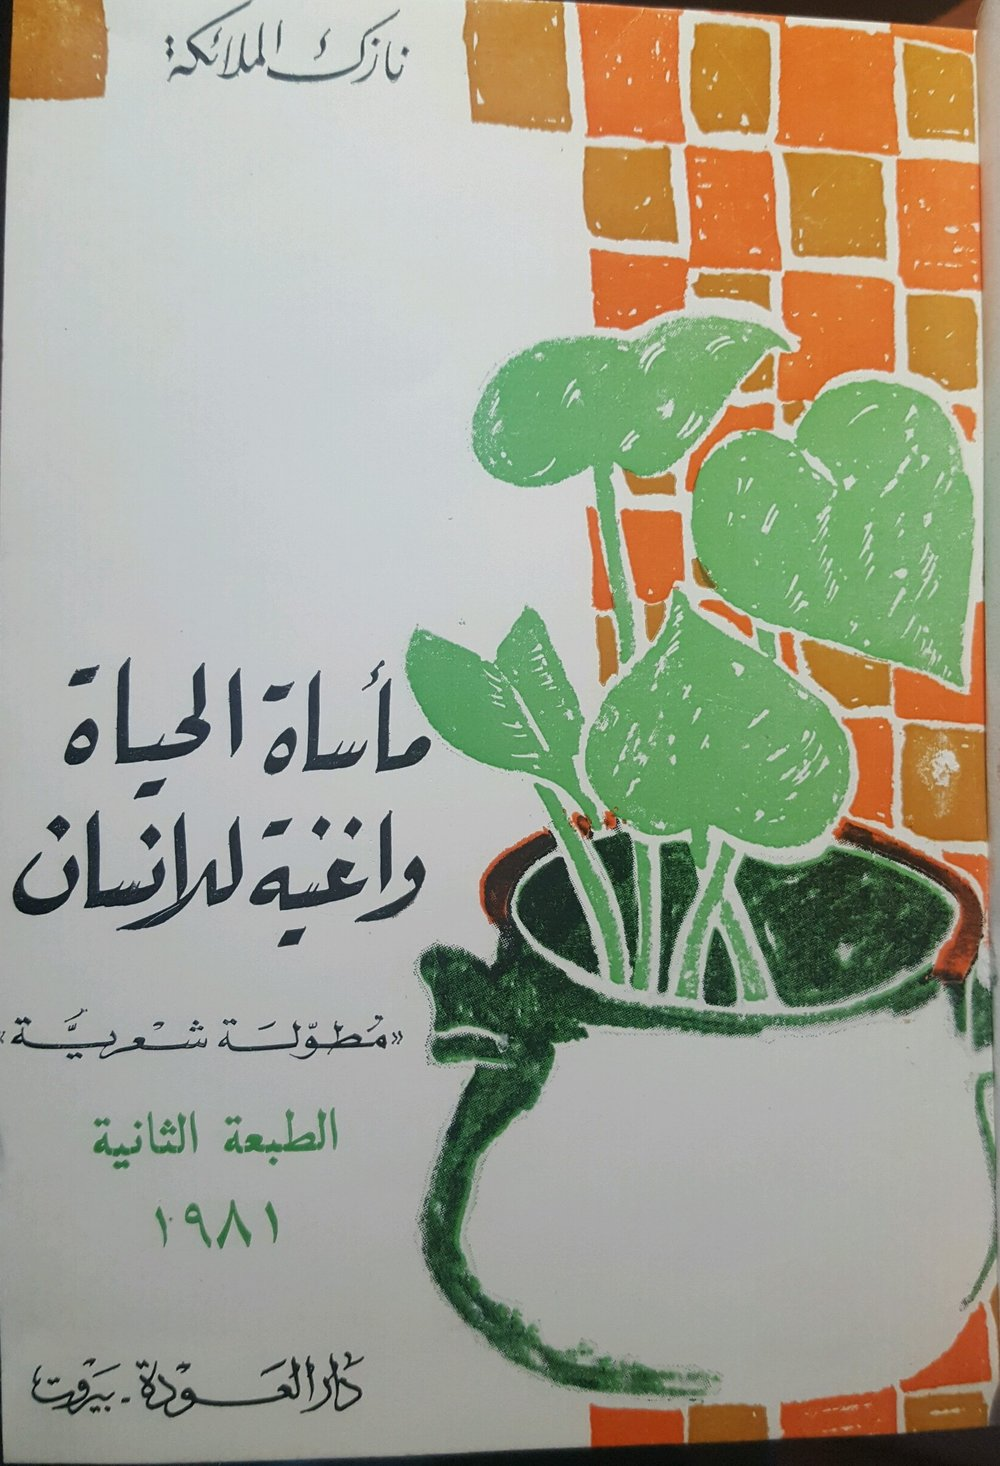 2nd edition, 1981 - Dār al-ʿAwdah in Beirut.